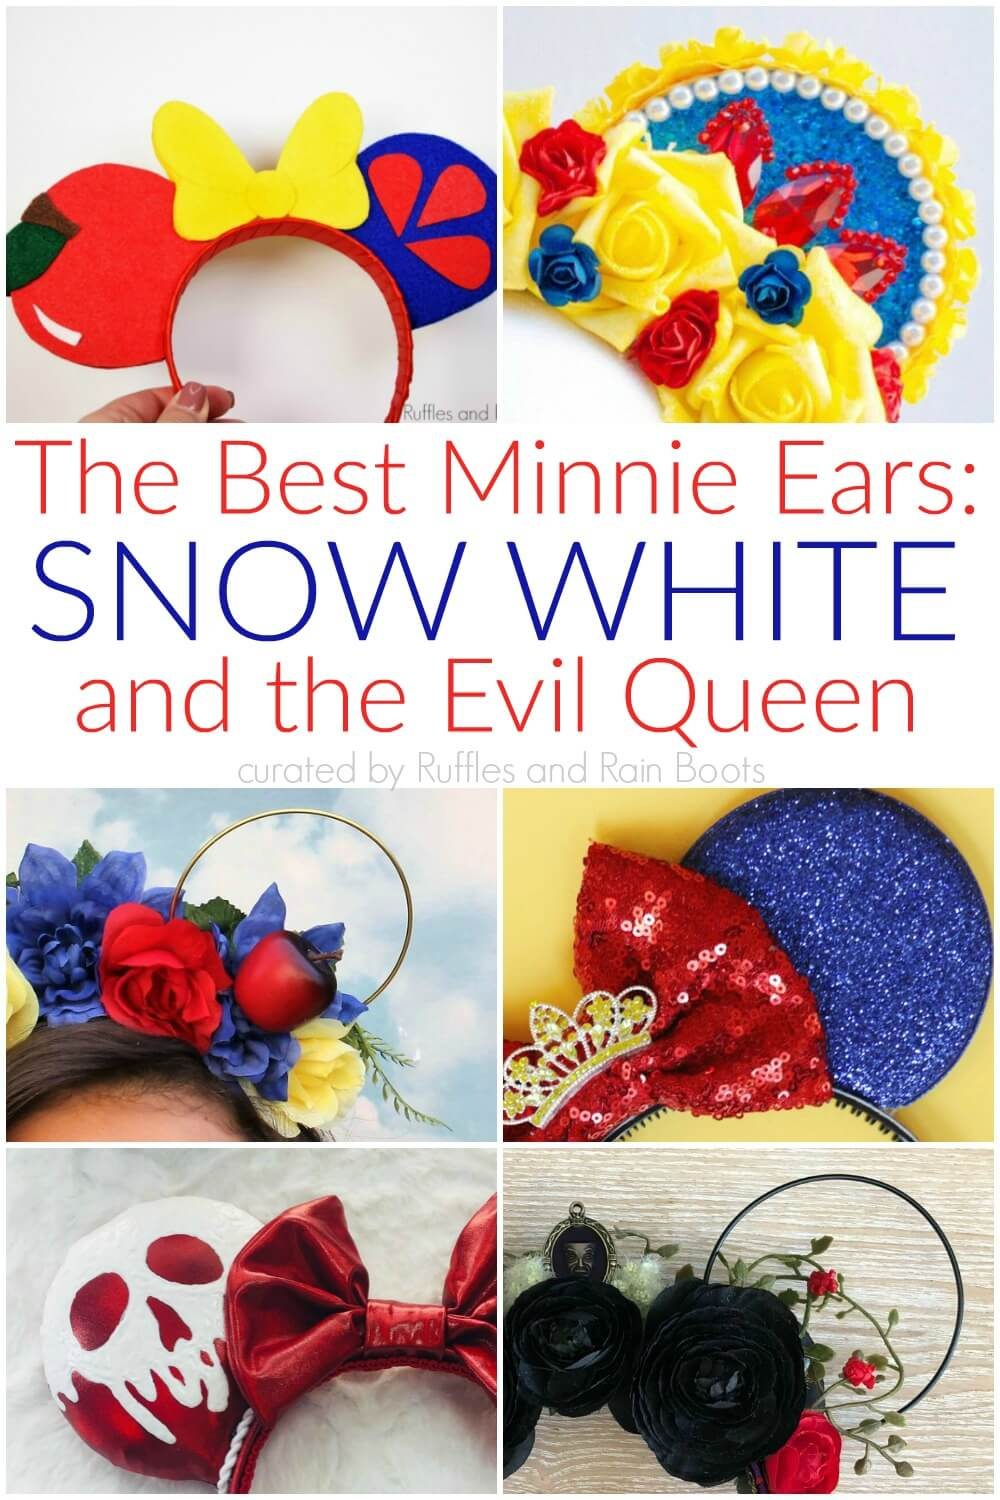 colorful collage of the most creative and best snow white minnie ears and evil queen mickey ears